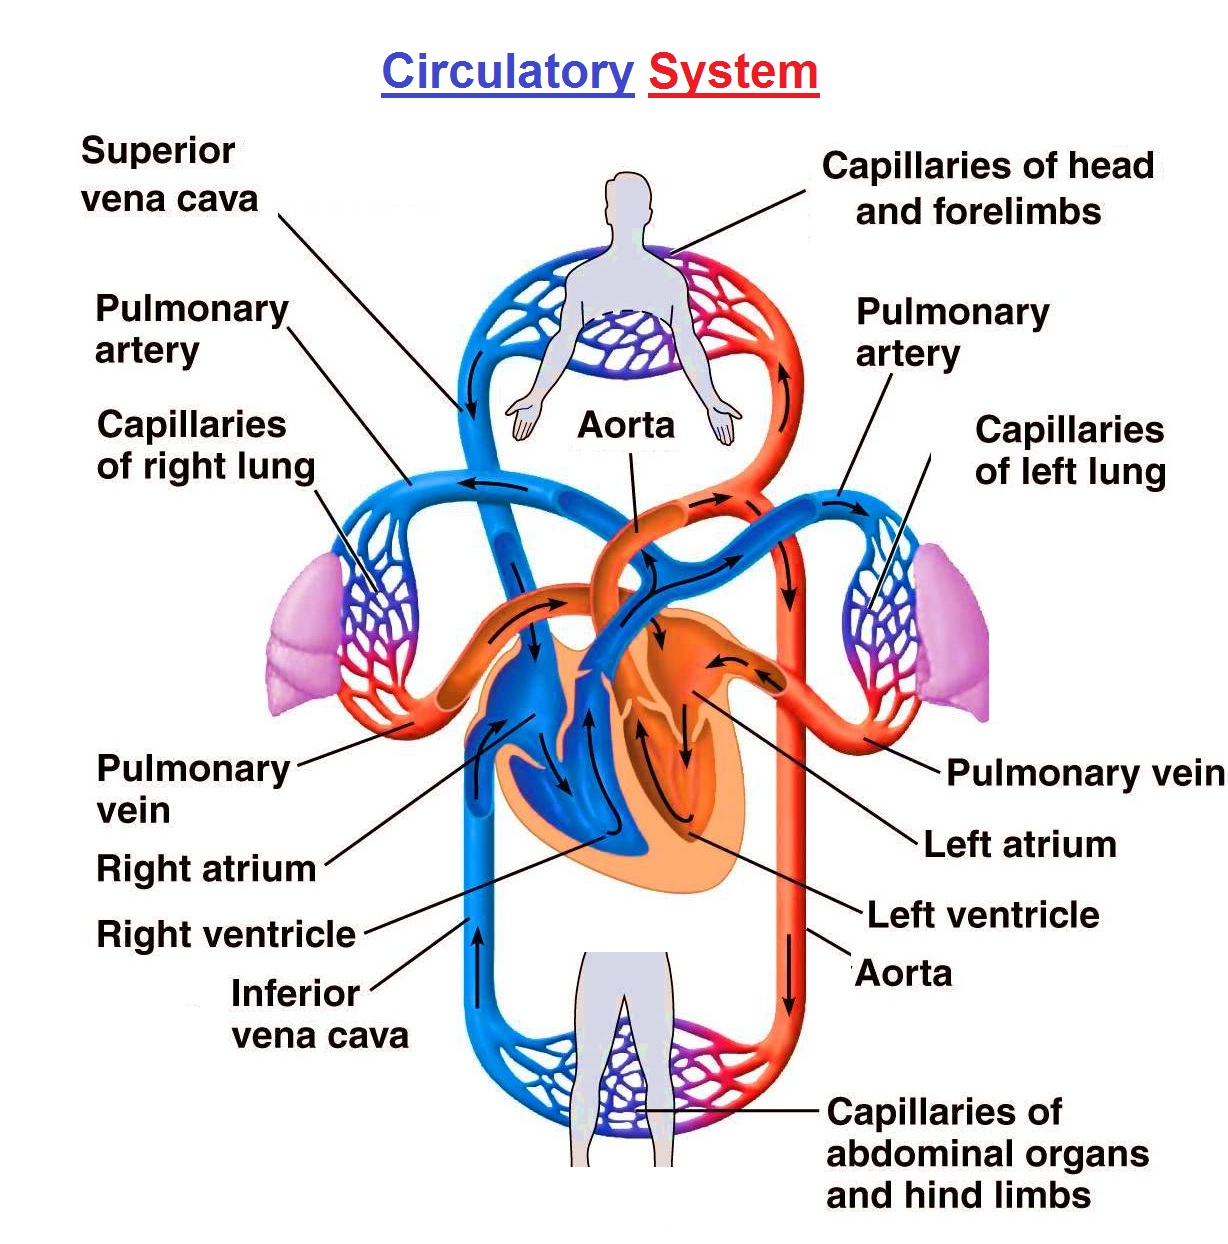 Circulatory System Diagrams Chart Diagram Charts Diagrams